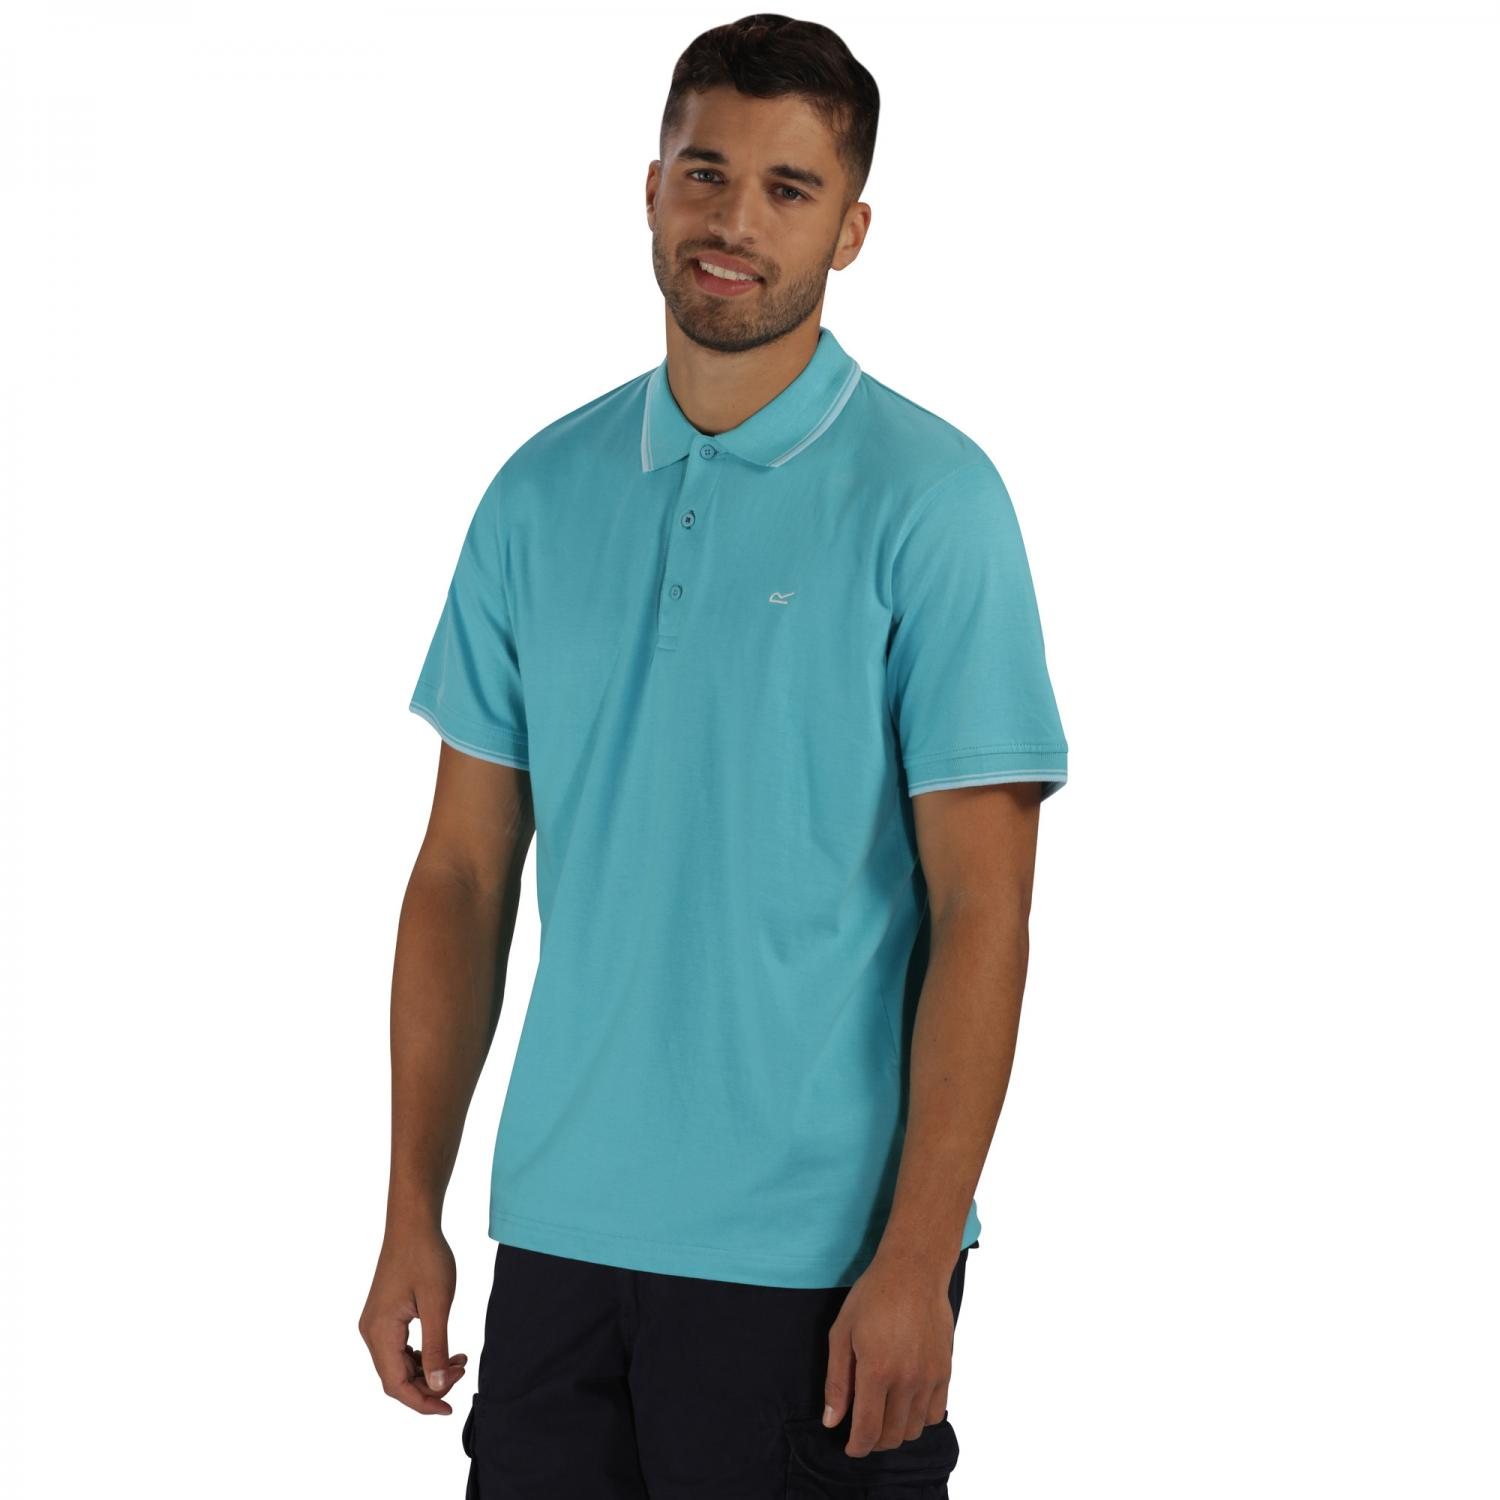 Kaine Polo Shirt Maui Blue